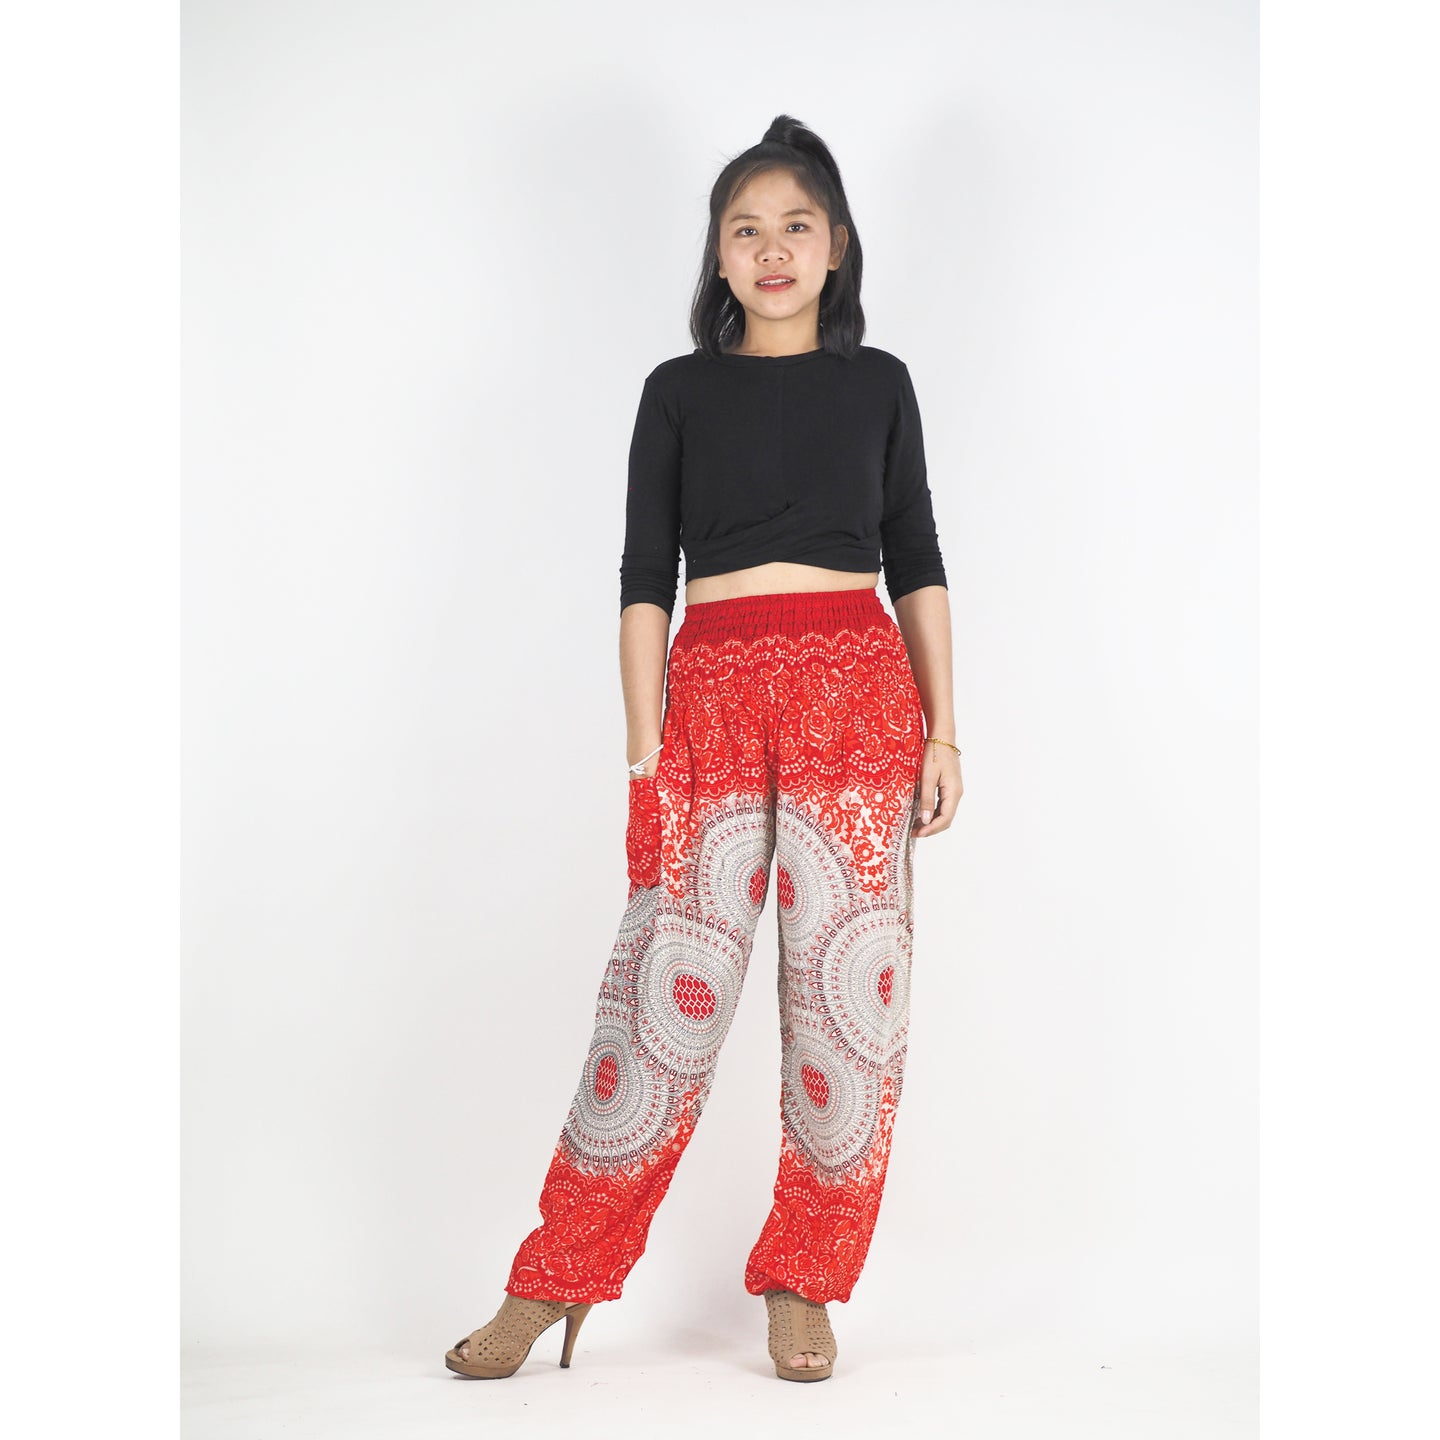 Mandala 210 women harem pants in Orange PP0004 020210 06